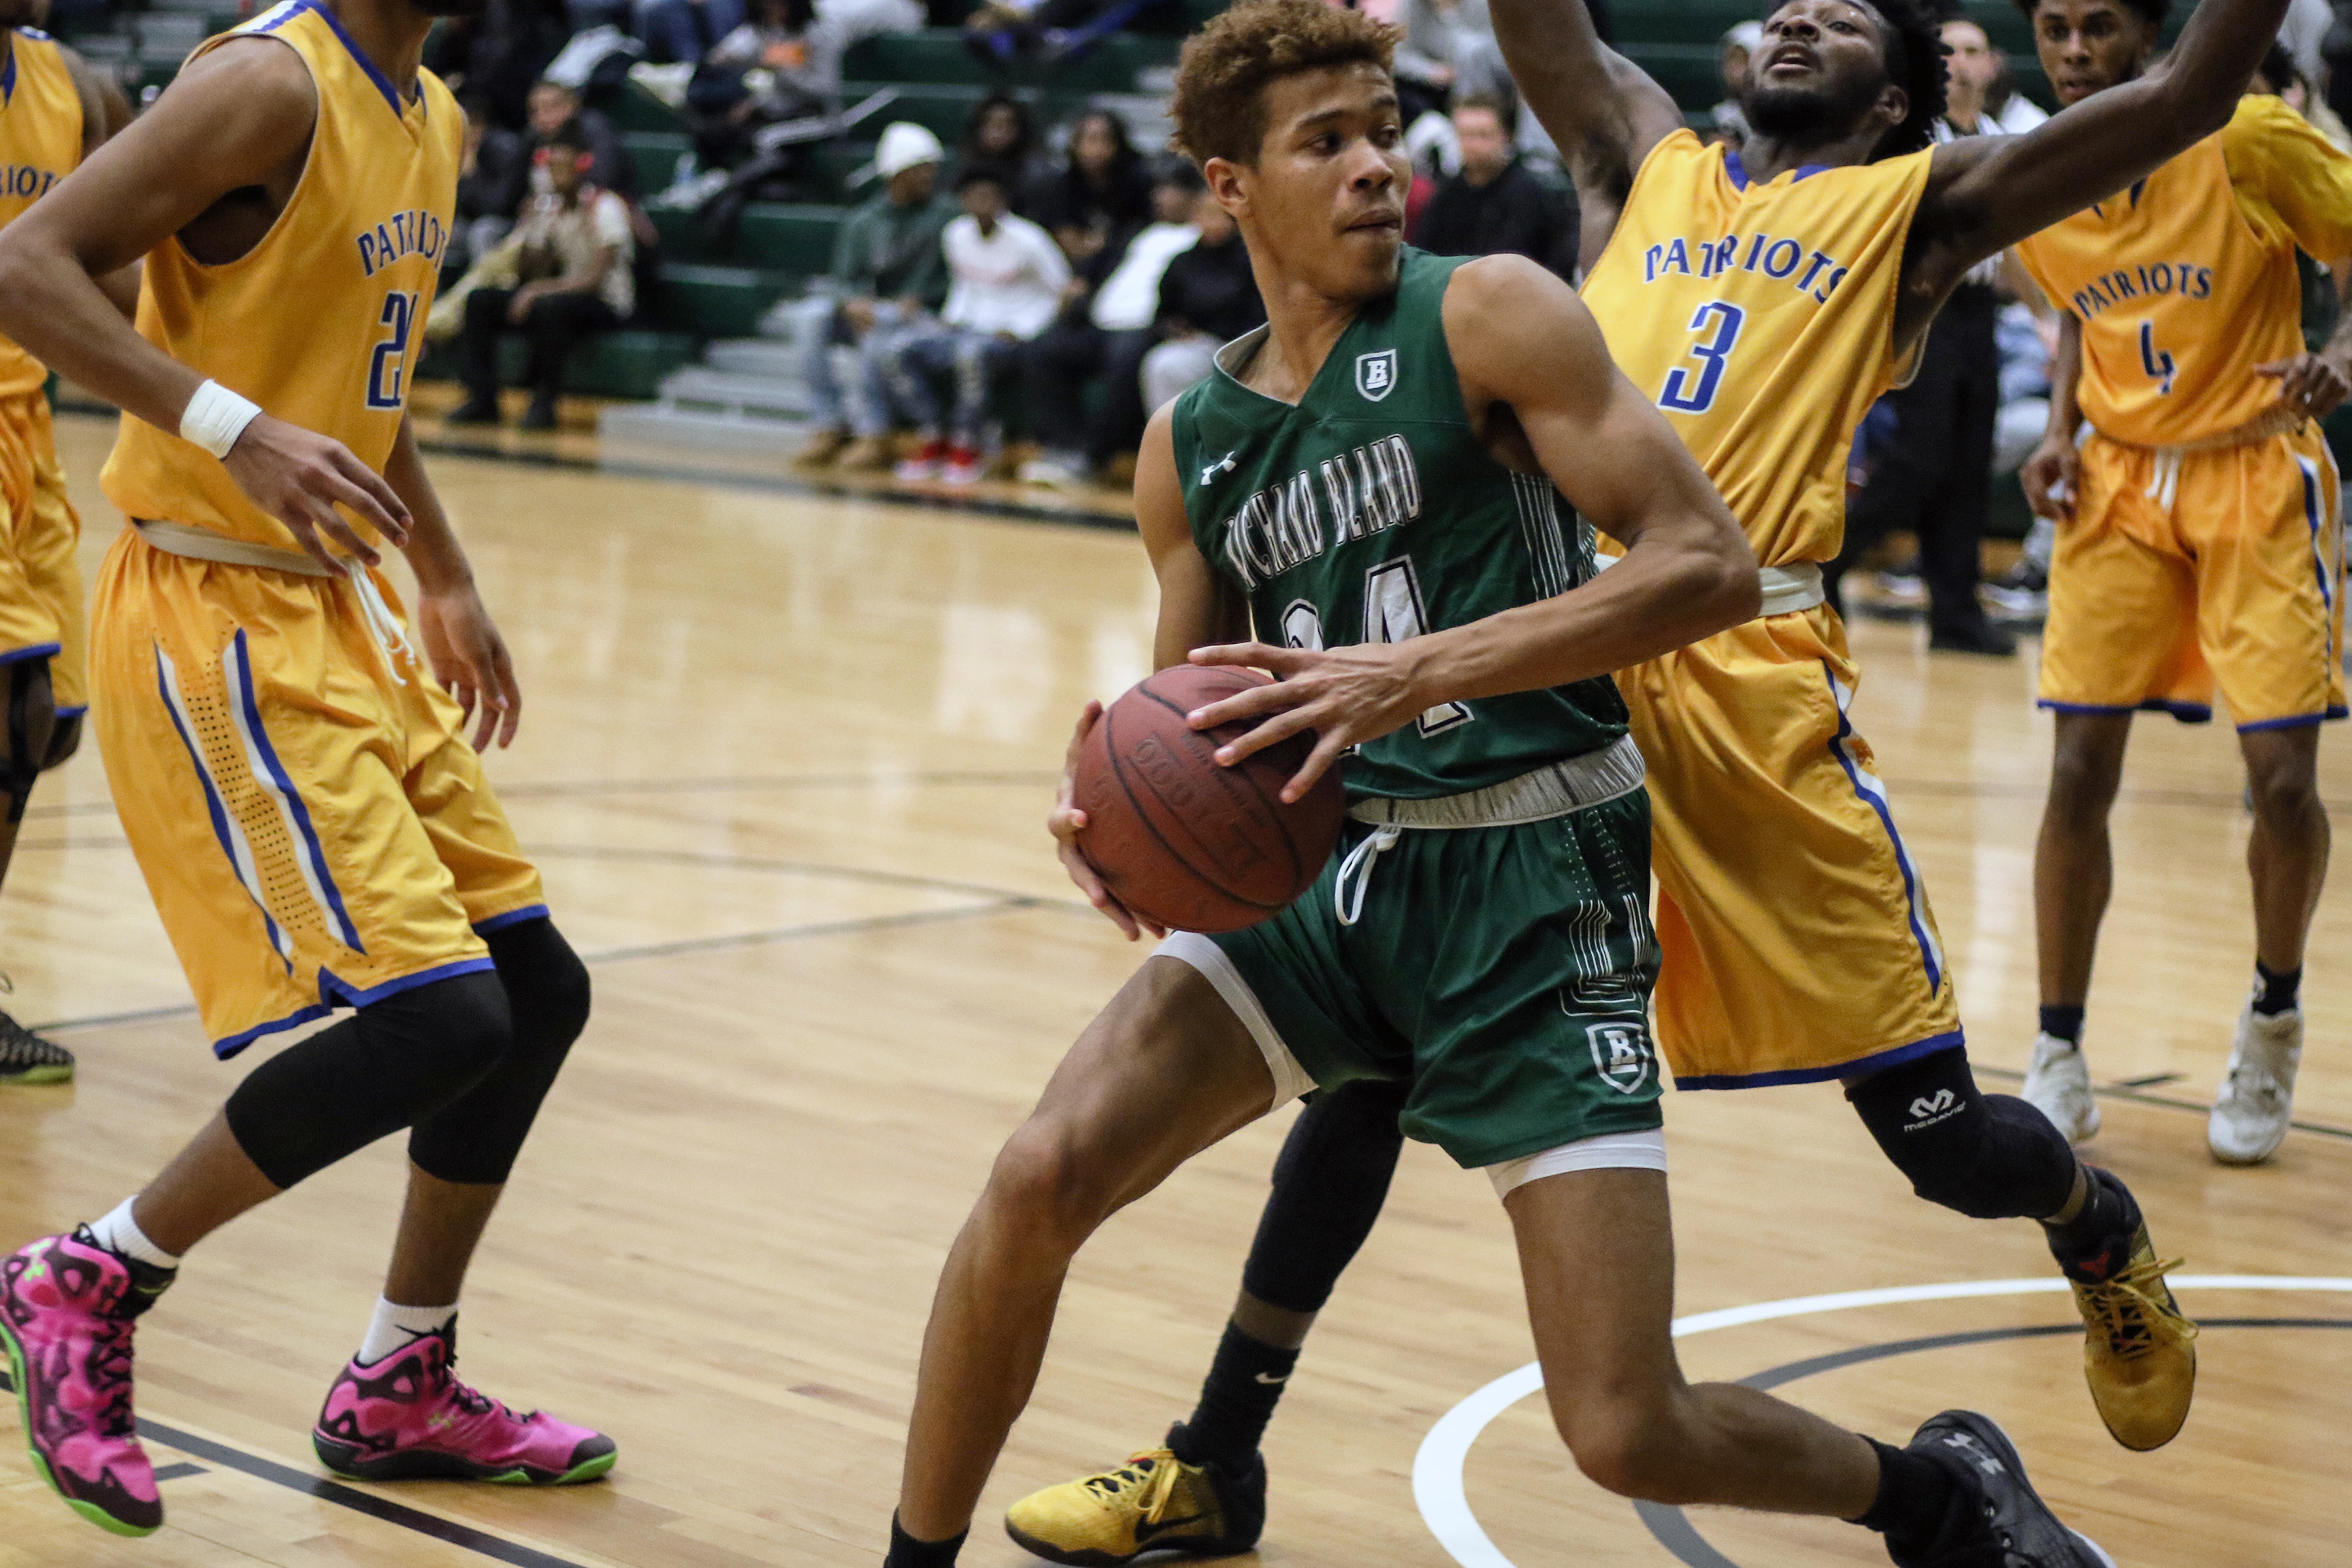 Richard Bland Men's Basketball Runs Past Visiting In-State ...